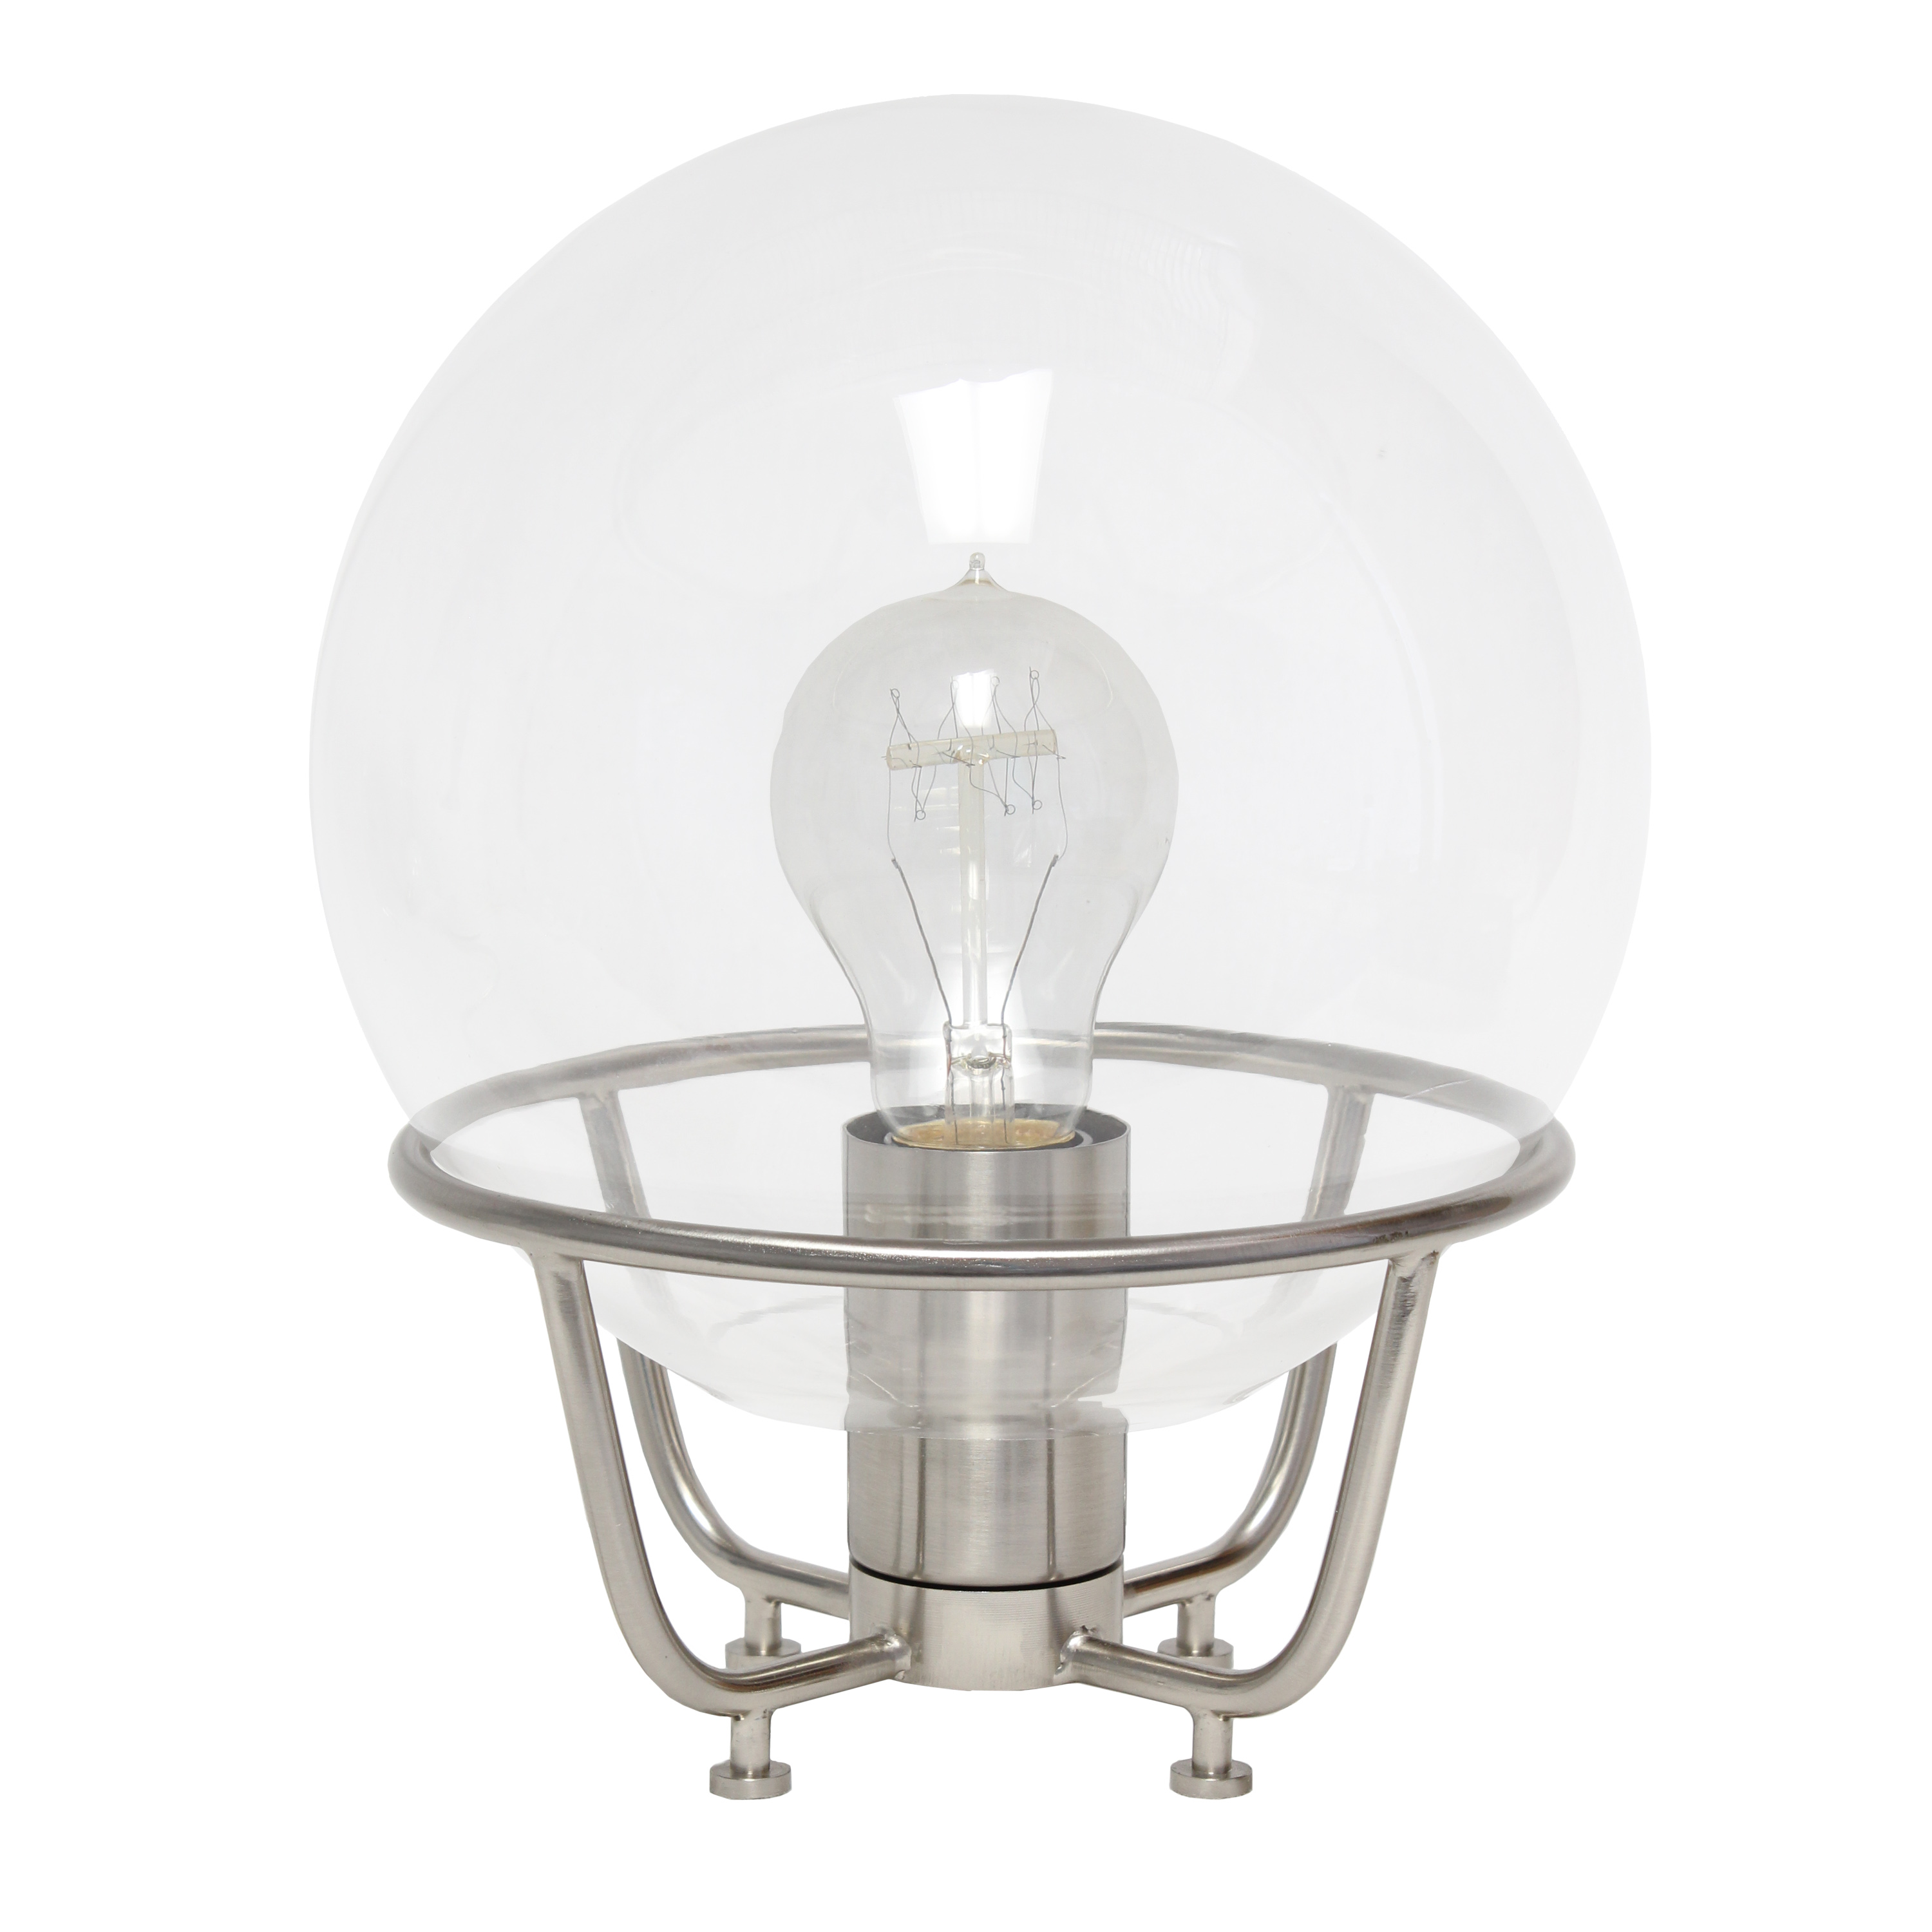 Lalia Home Old World Globe Glass Table Lamp, Brushed Nickel